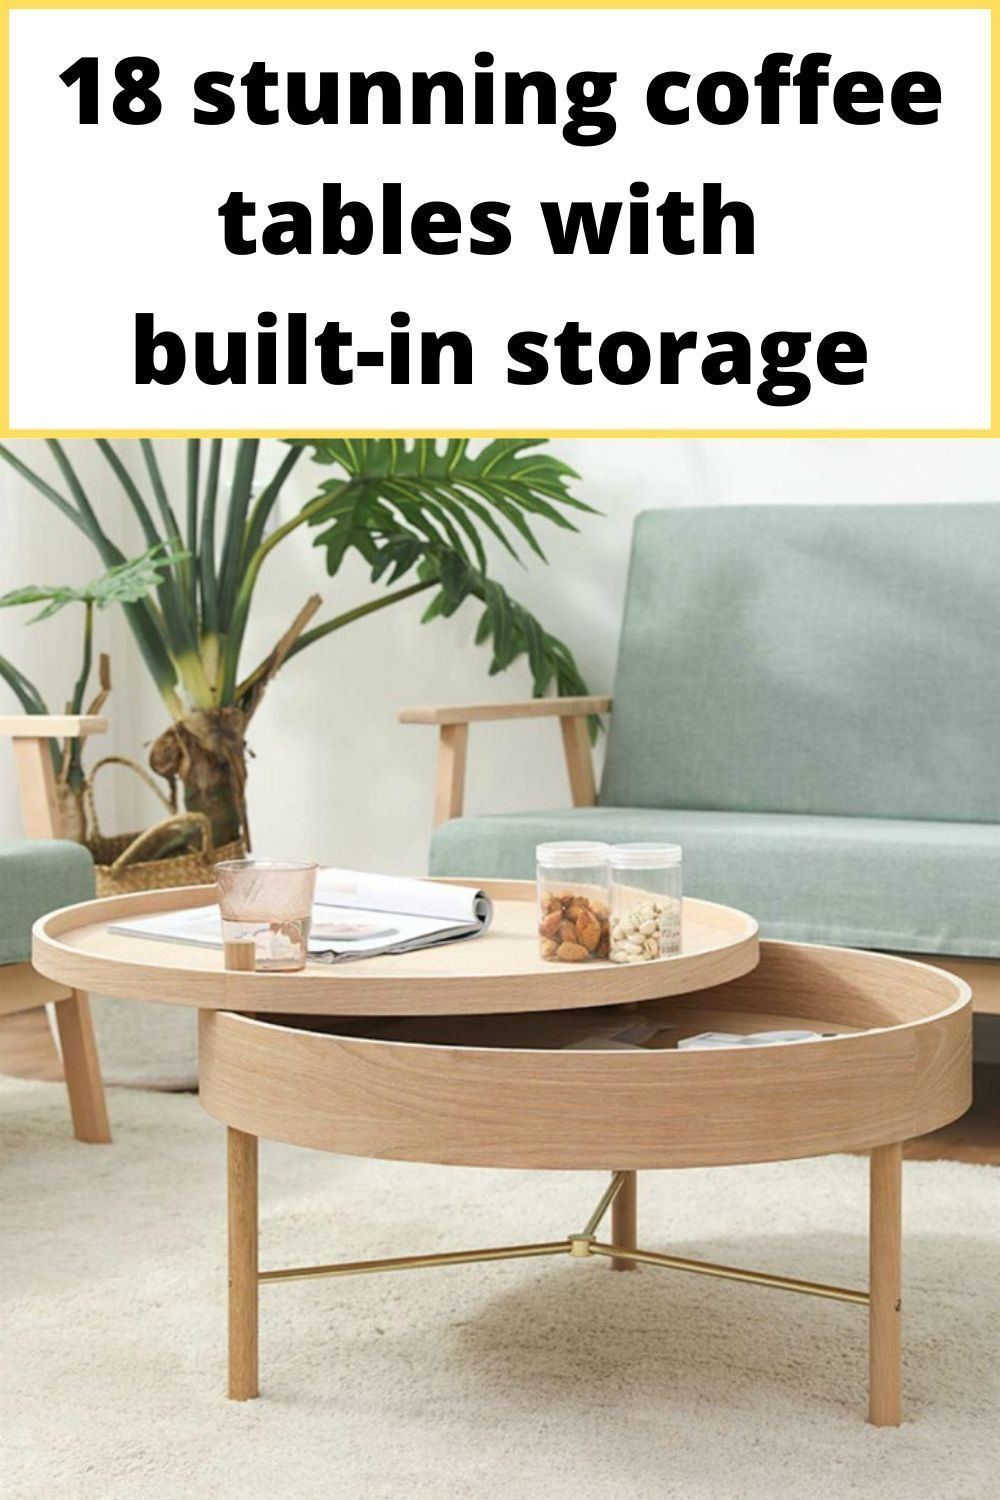 18 Stunning Coffee Tables With Built In Storage Living In A Shoebox Coffee Table Stylish Coffee Table Furniture For Small Spaces [ 1500 x 1000 Pixel ]